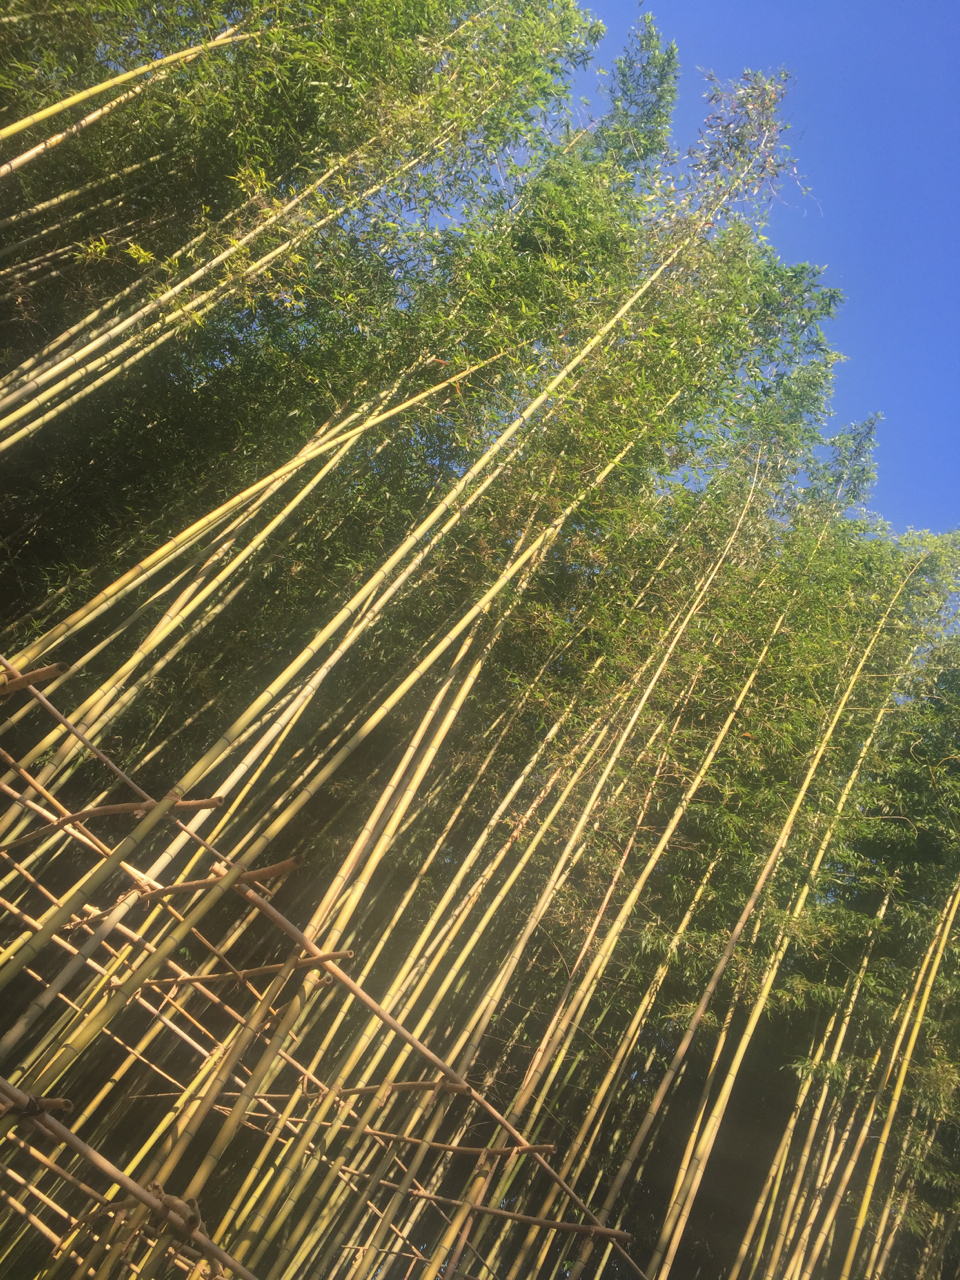 The towering bamboo at the entrance